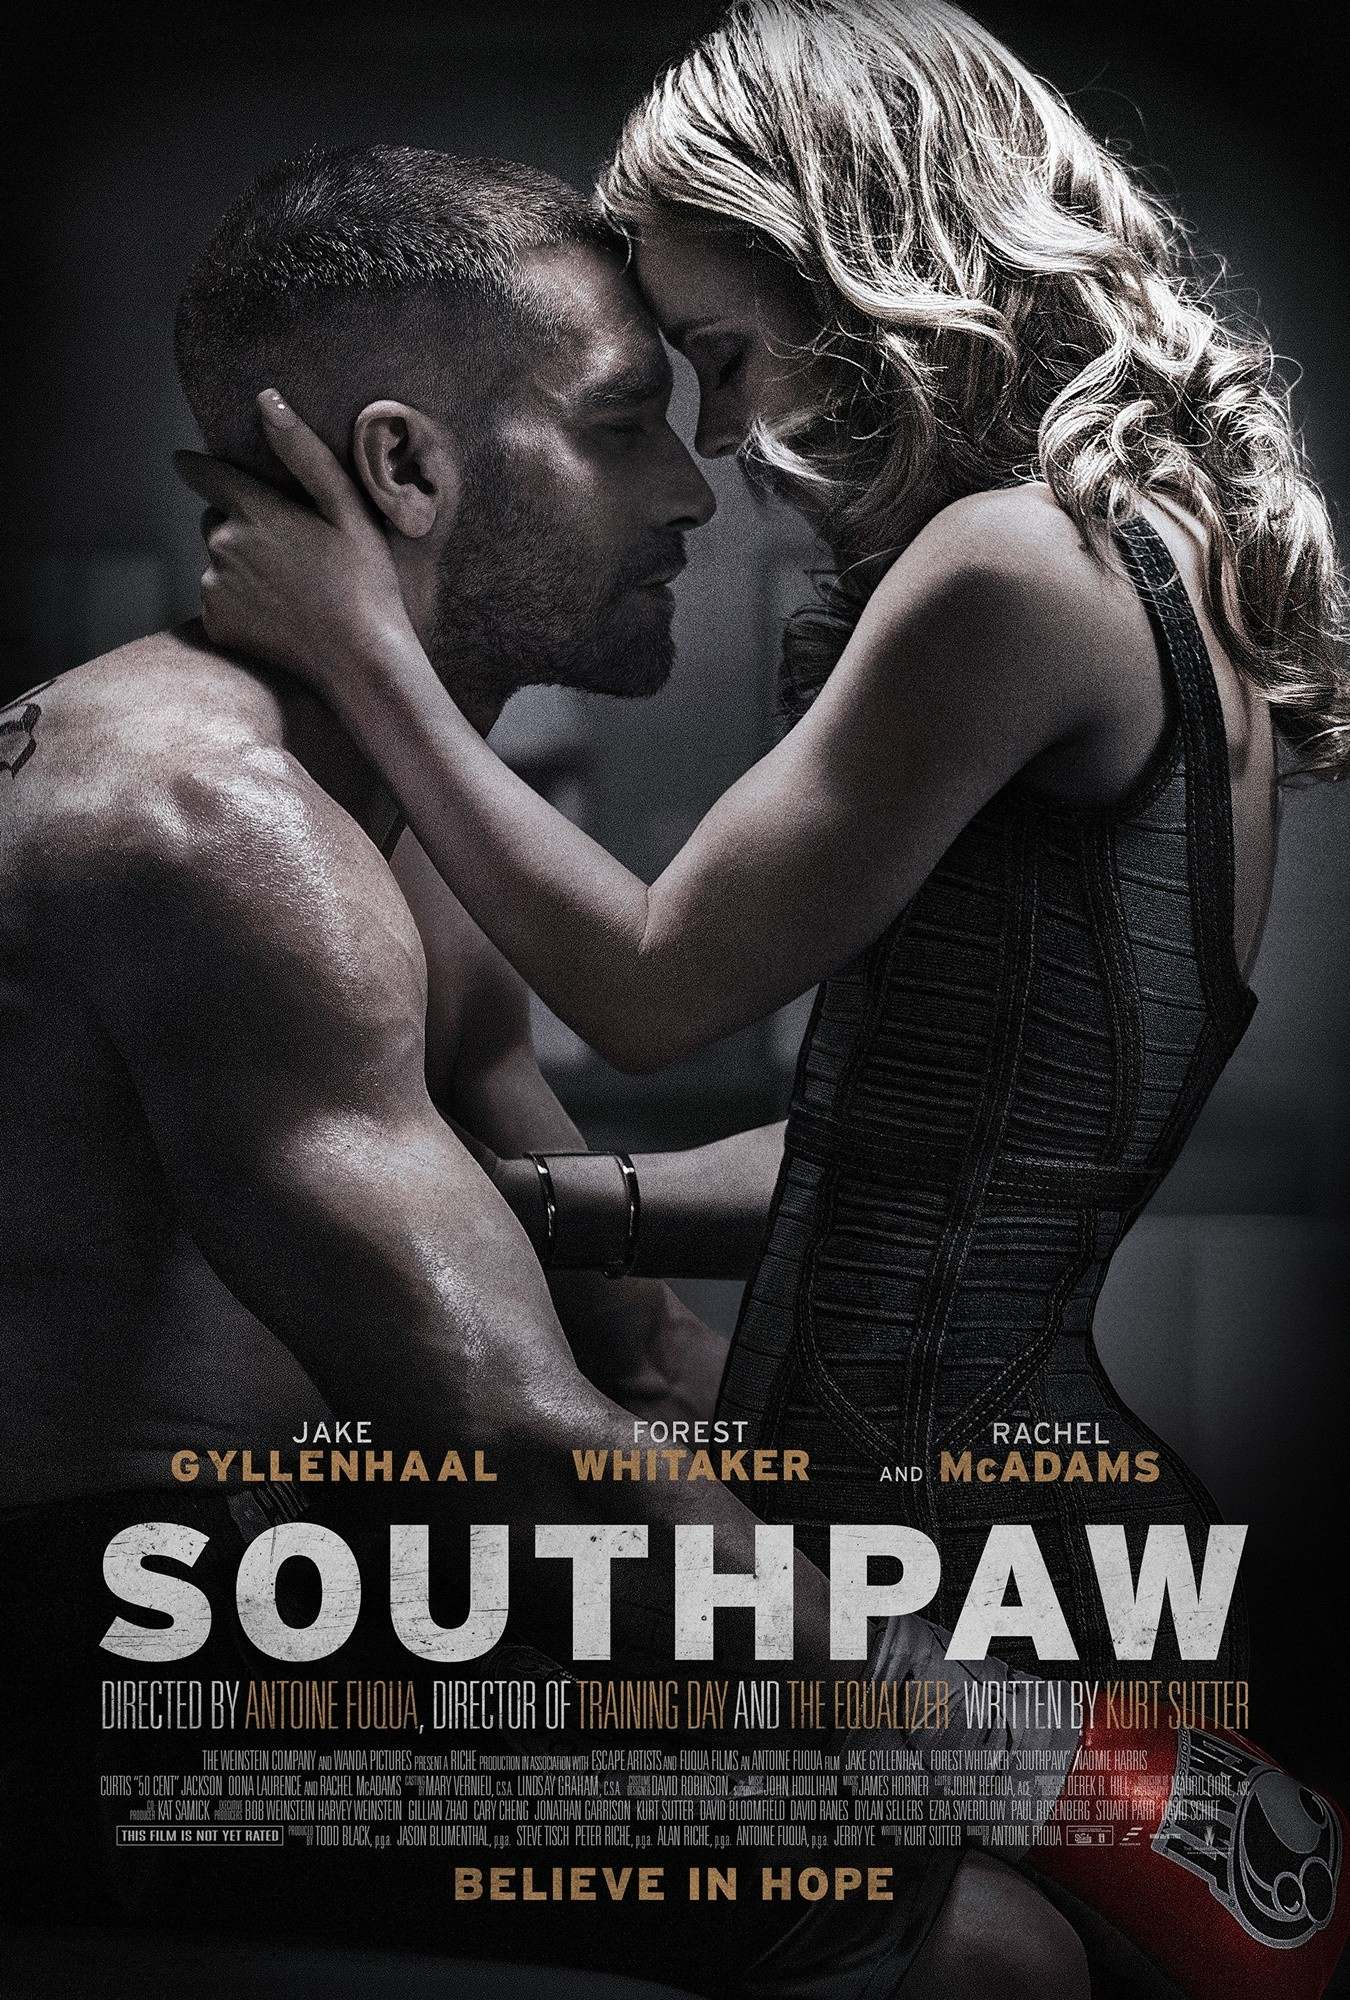 First let s get this out of the way southpaw isn t reinventing the